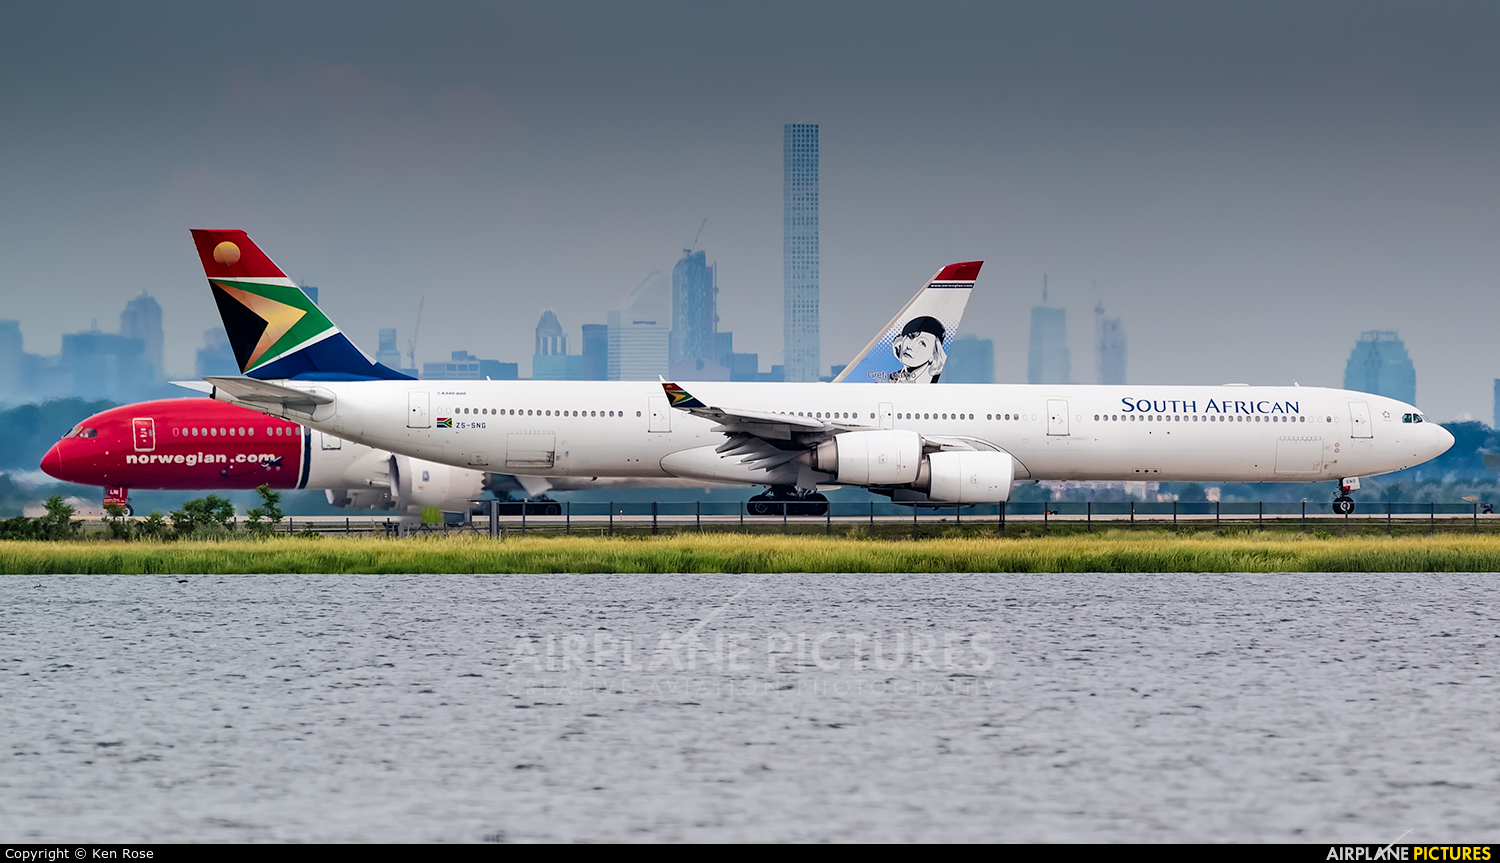 South African Airways ZS-SNG aircraft at New York - John F. Kennedy Intl